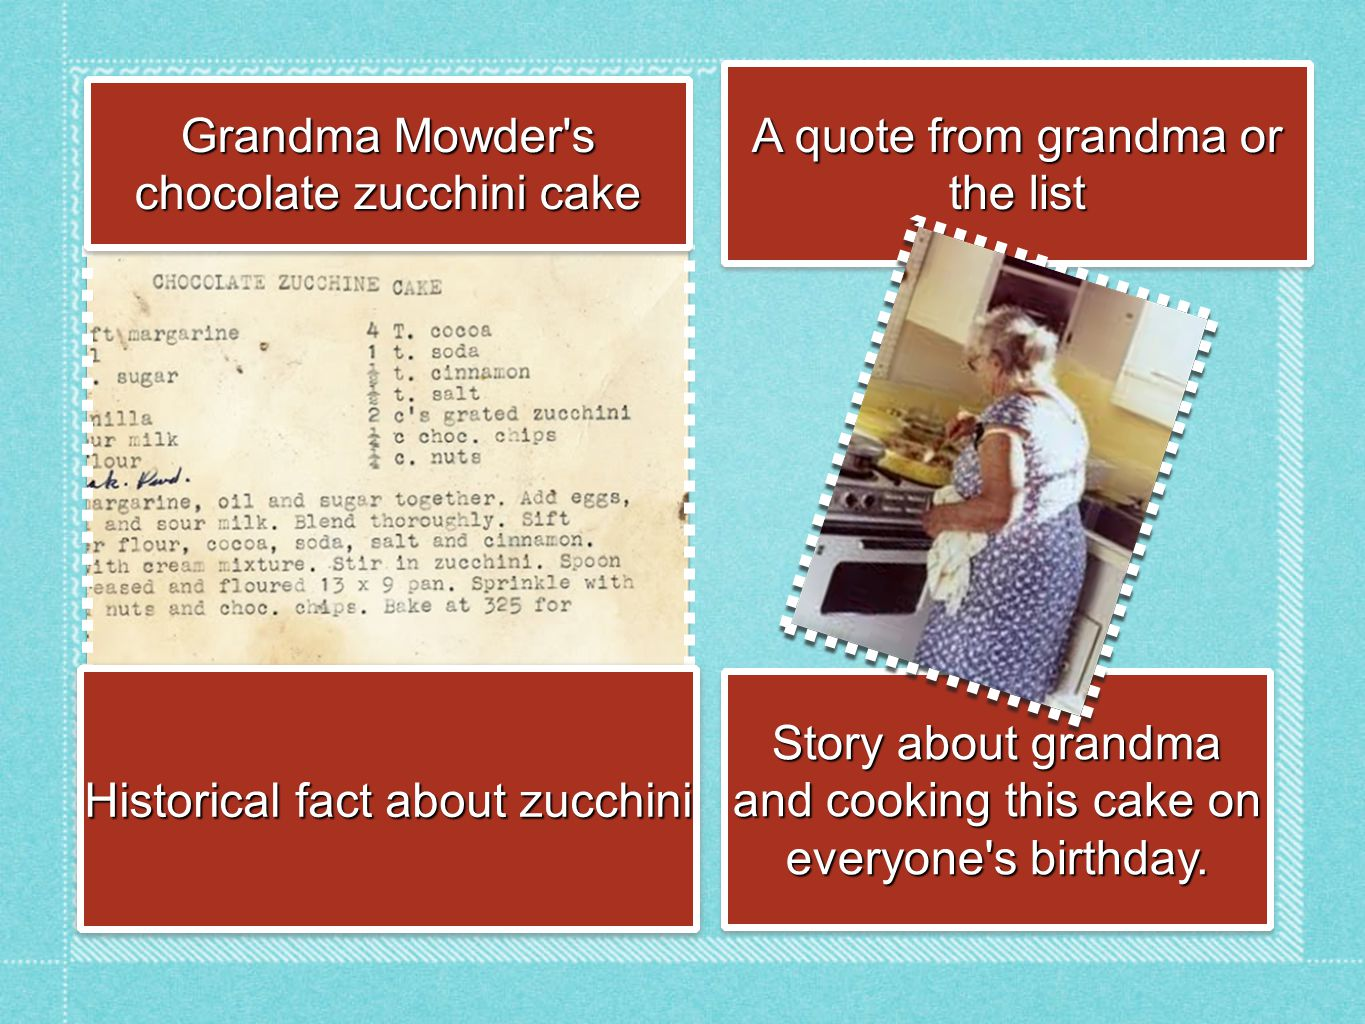 Grandma Mowder s chocolate zucchini cake Historical fact about zucchini Story about grandma and cooking this cake on everyone s birthday.